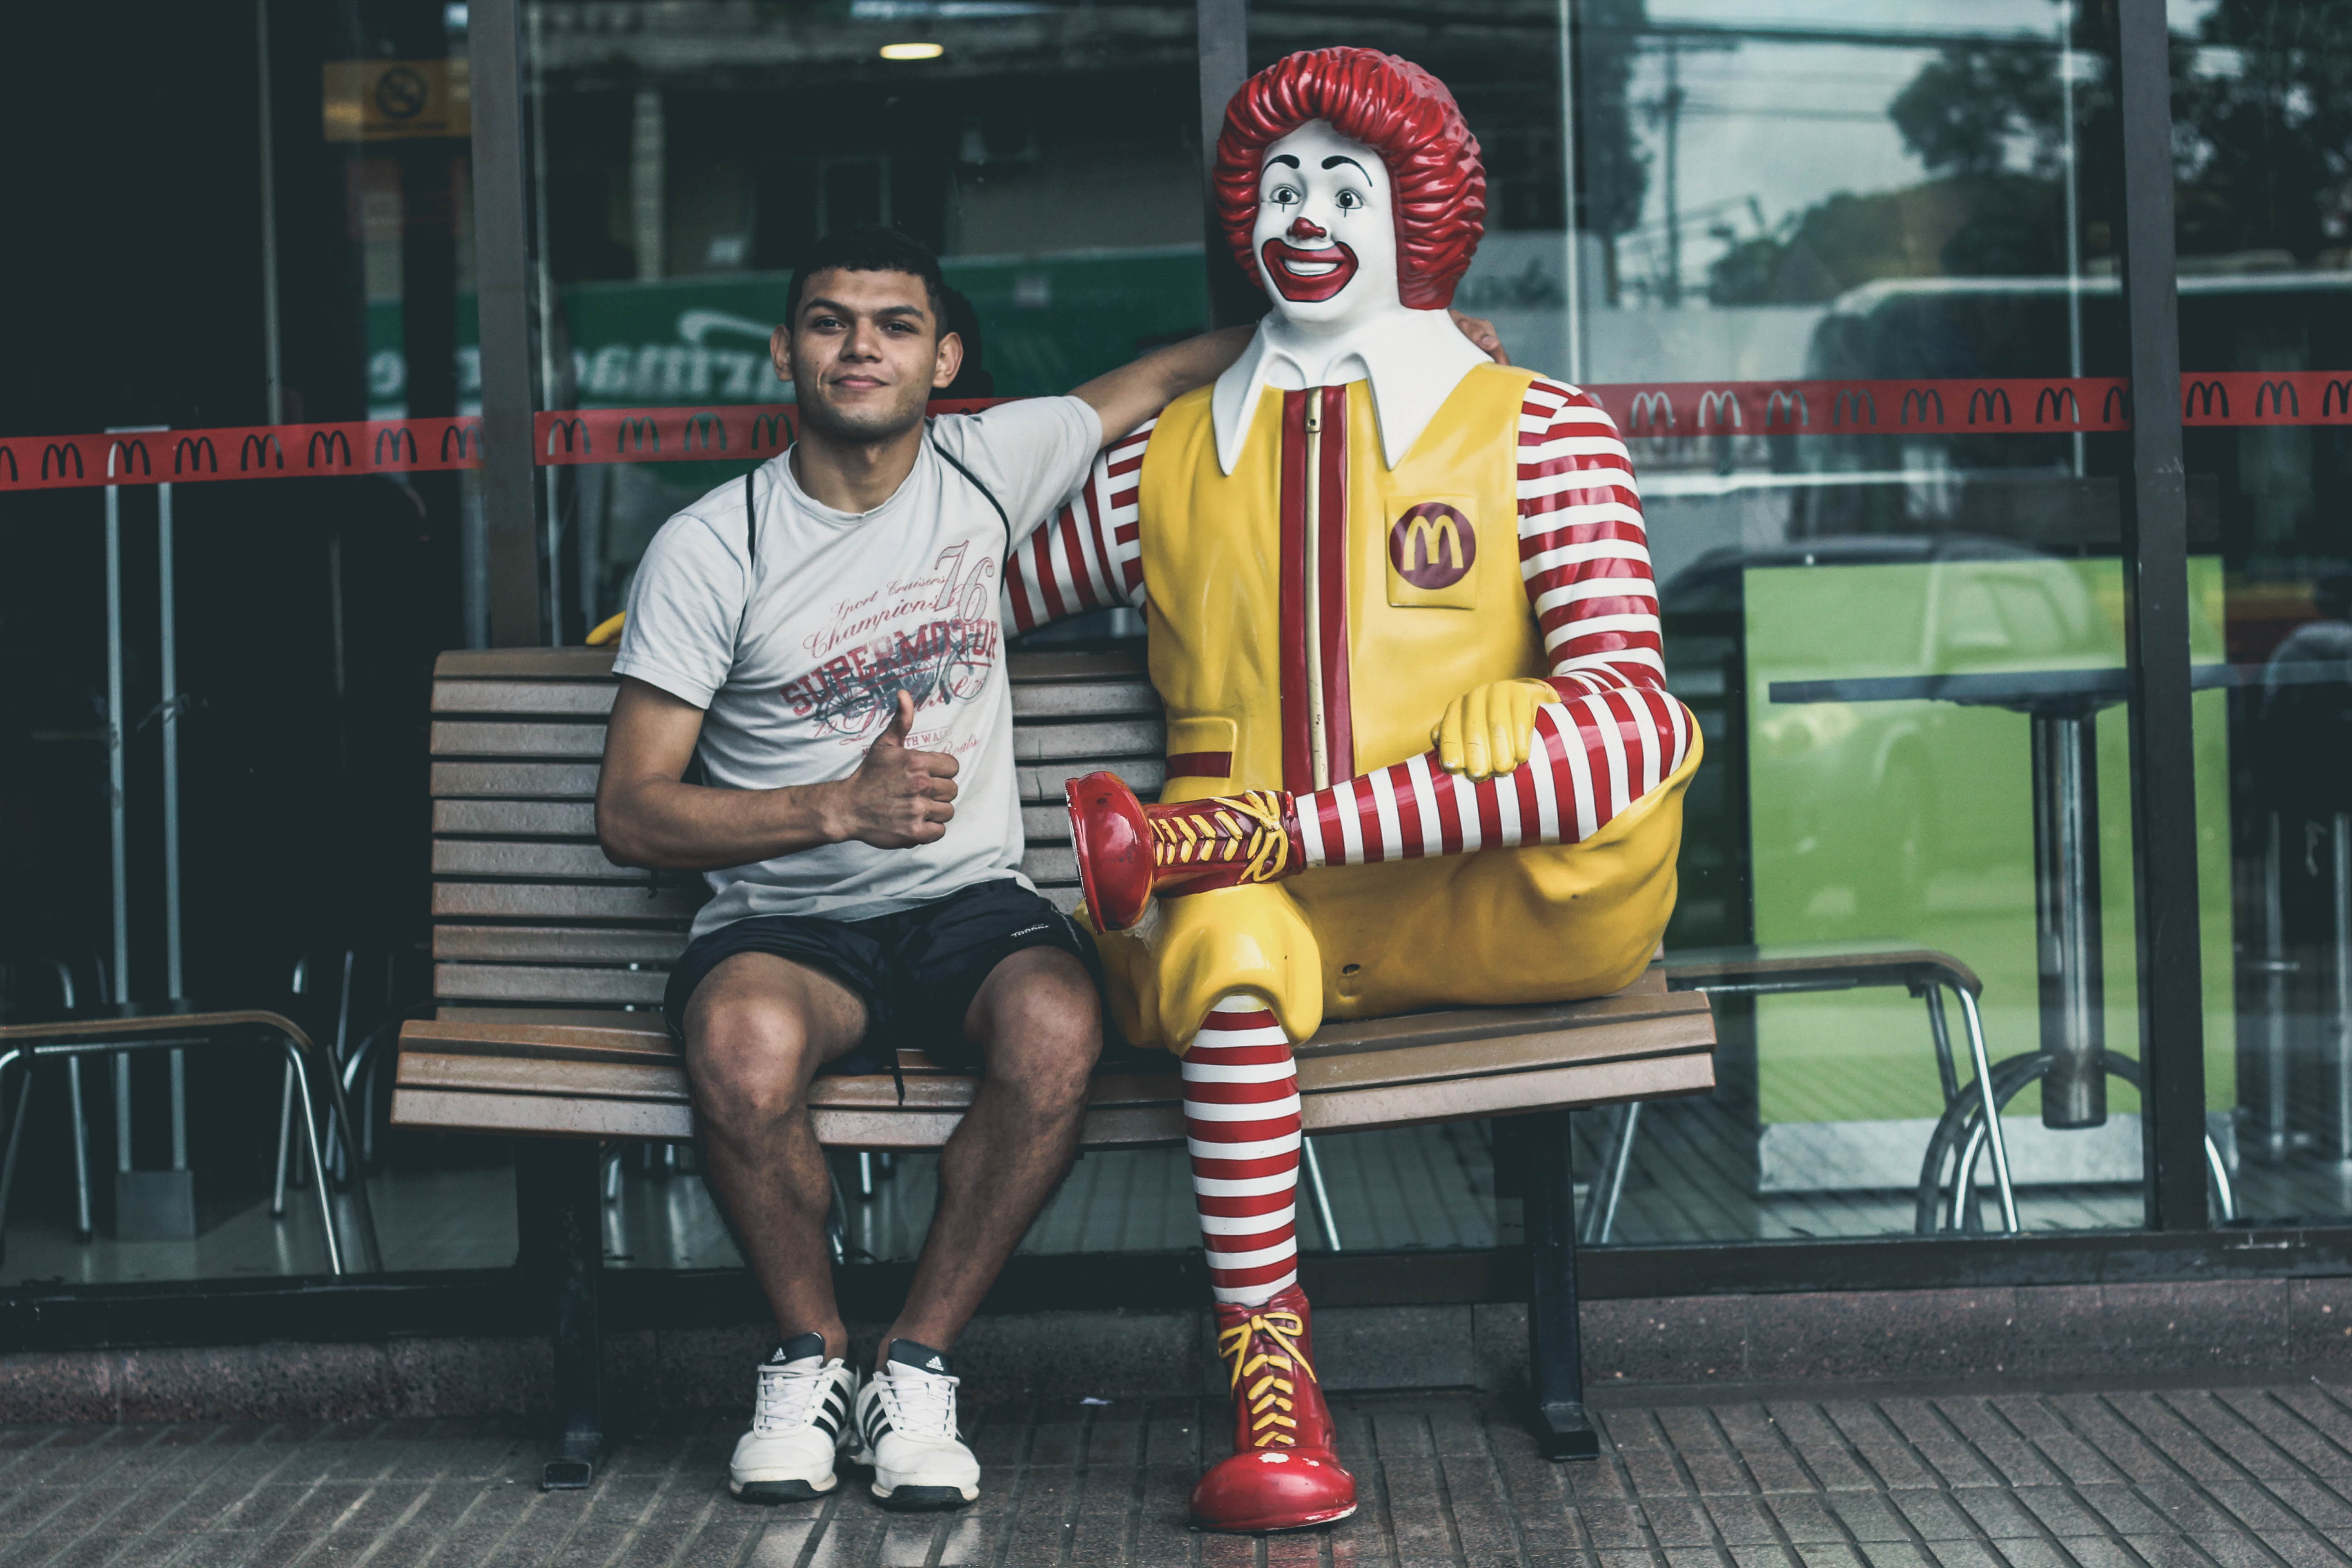 guy sitting with ronald mcdonald outside mcdonald's restaurant